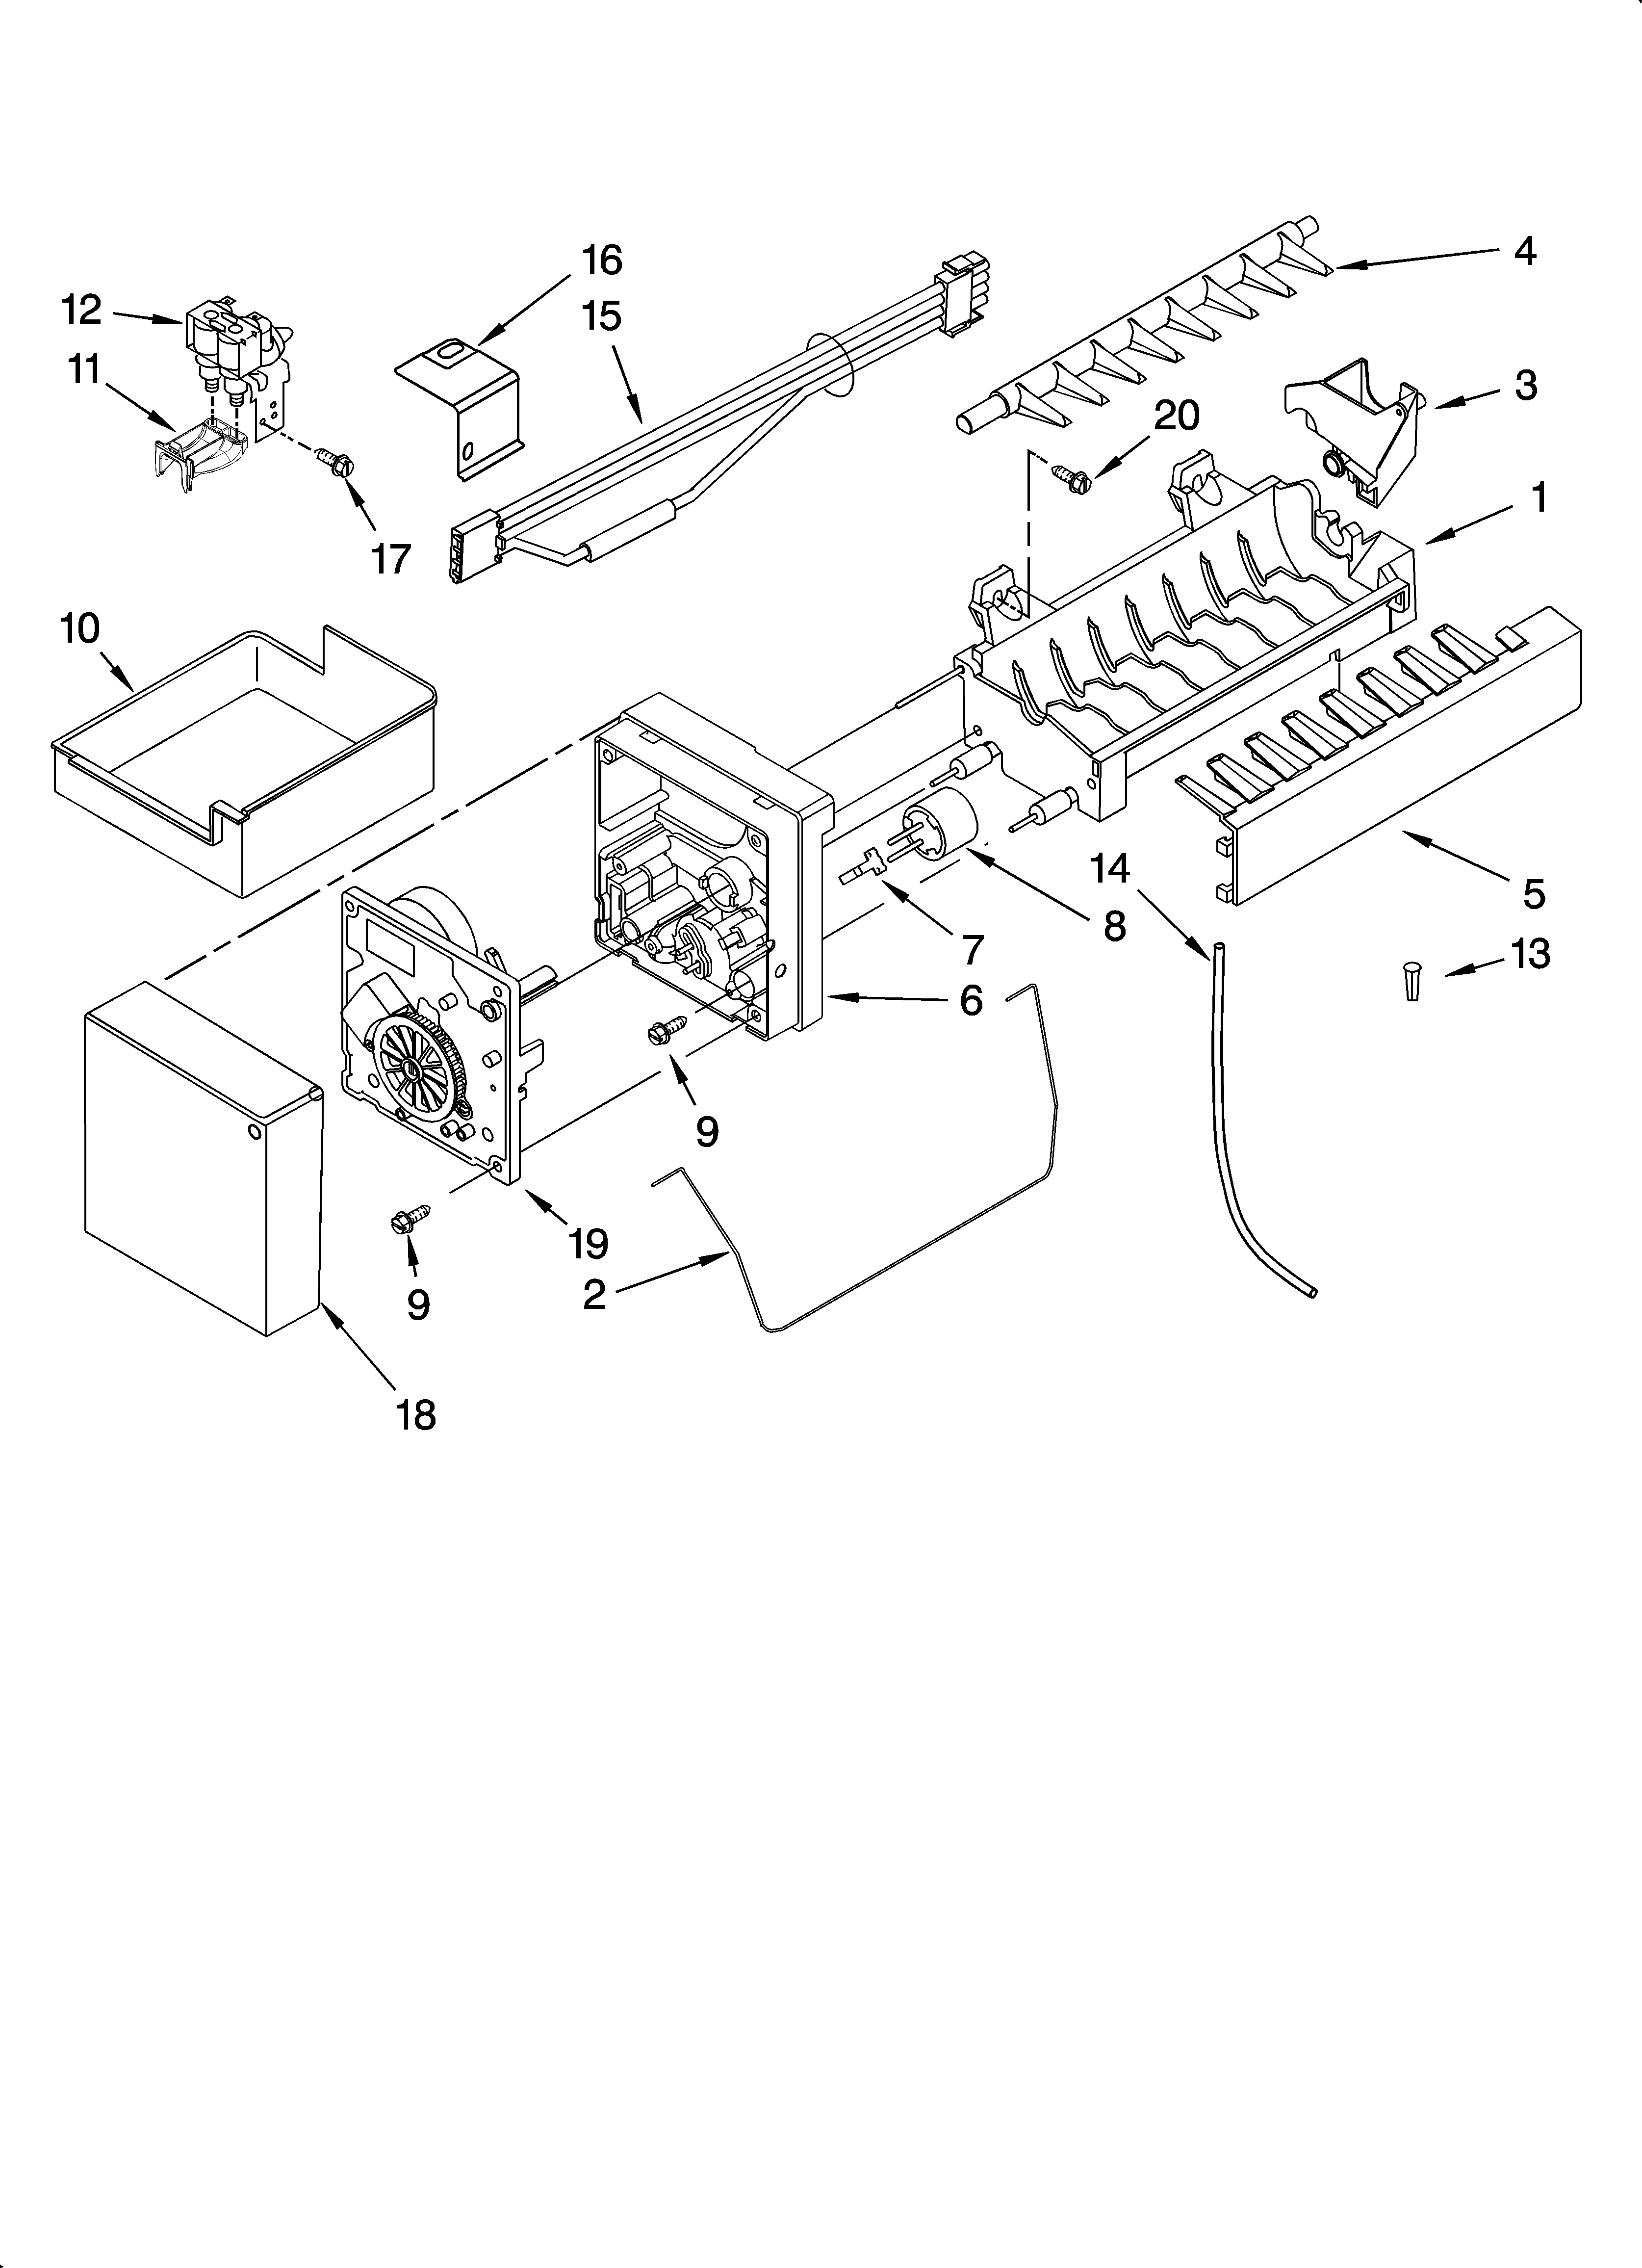 Whirlpool GX5SHTXTQ00 icemaker parts, optional parts (not included) diagram